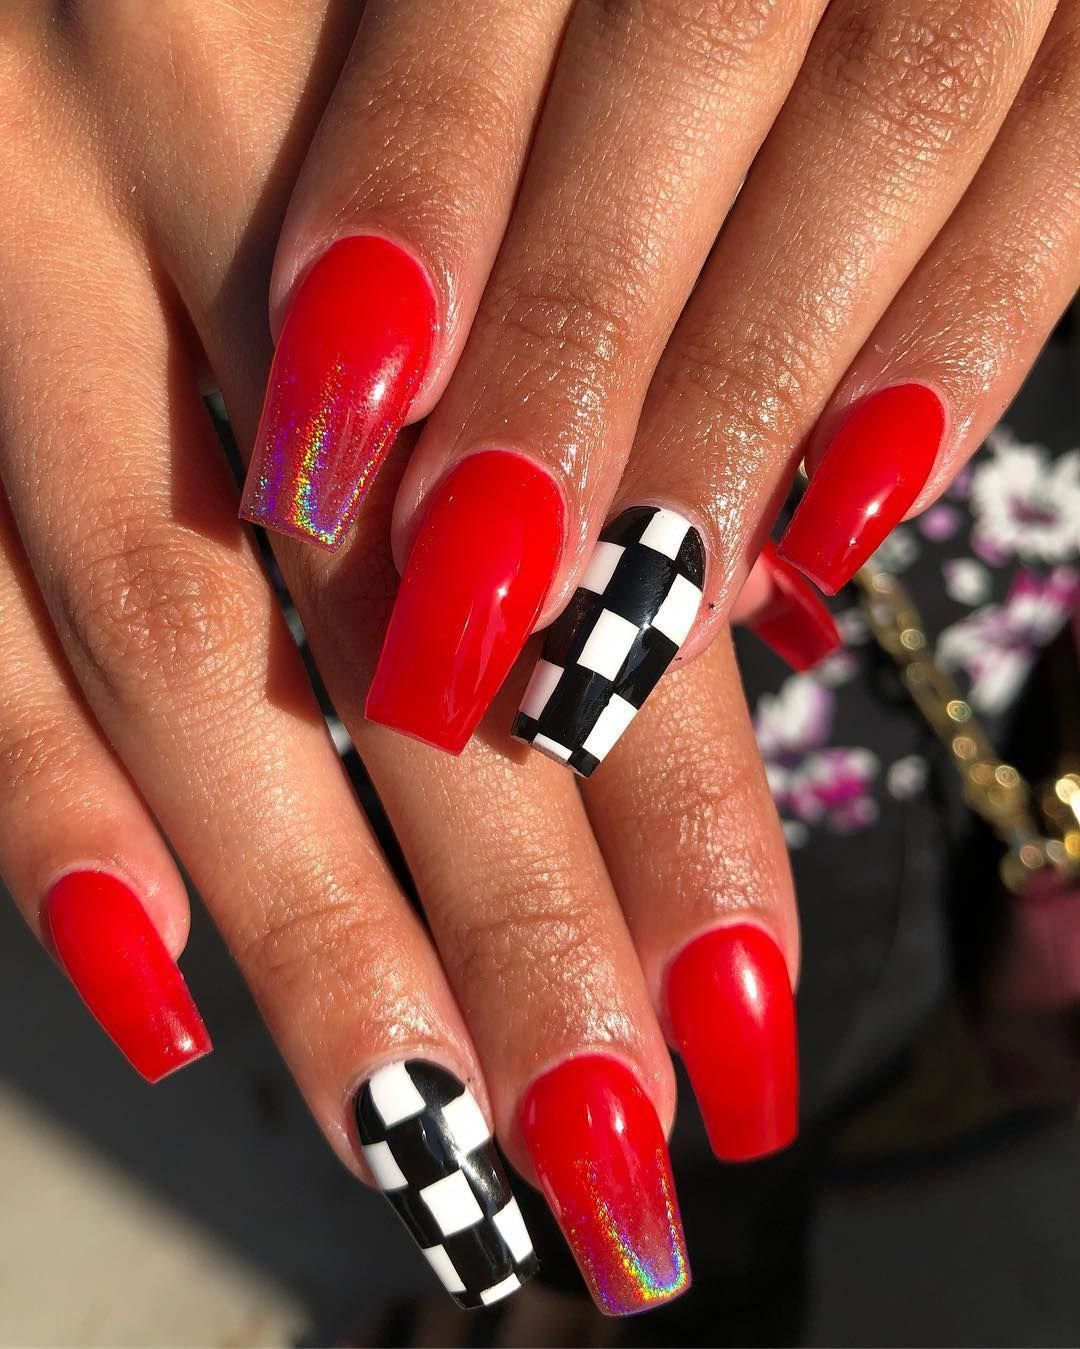 Vans Checkerboard Red Coffin Nails Checkered Nails Red Acrylic Nails Acrylic Nails Stiletto